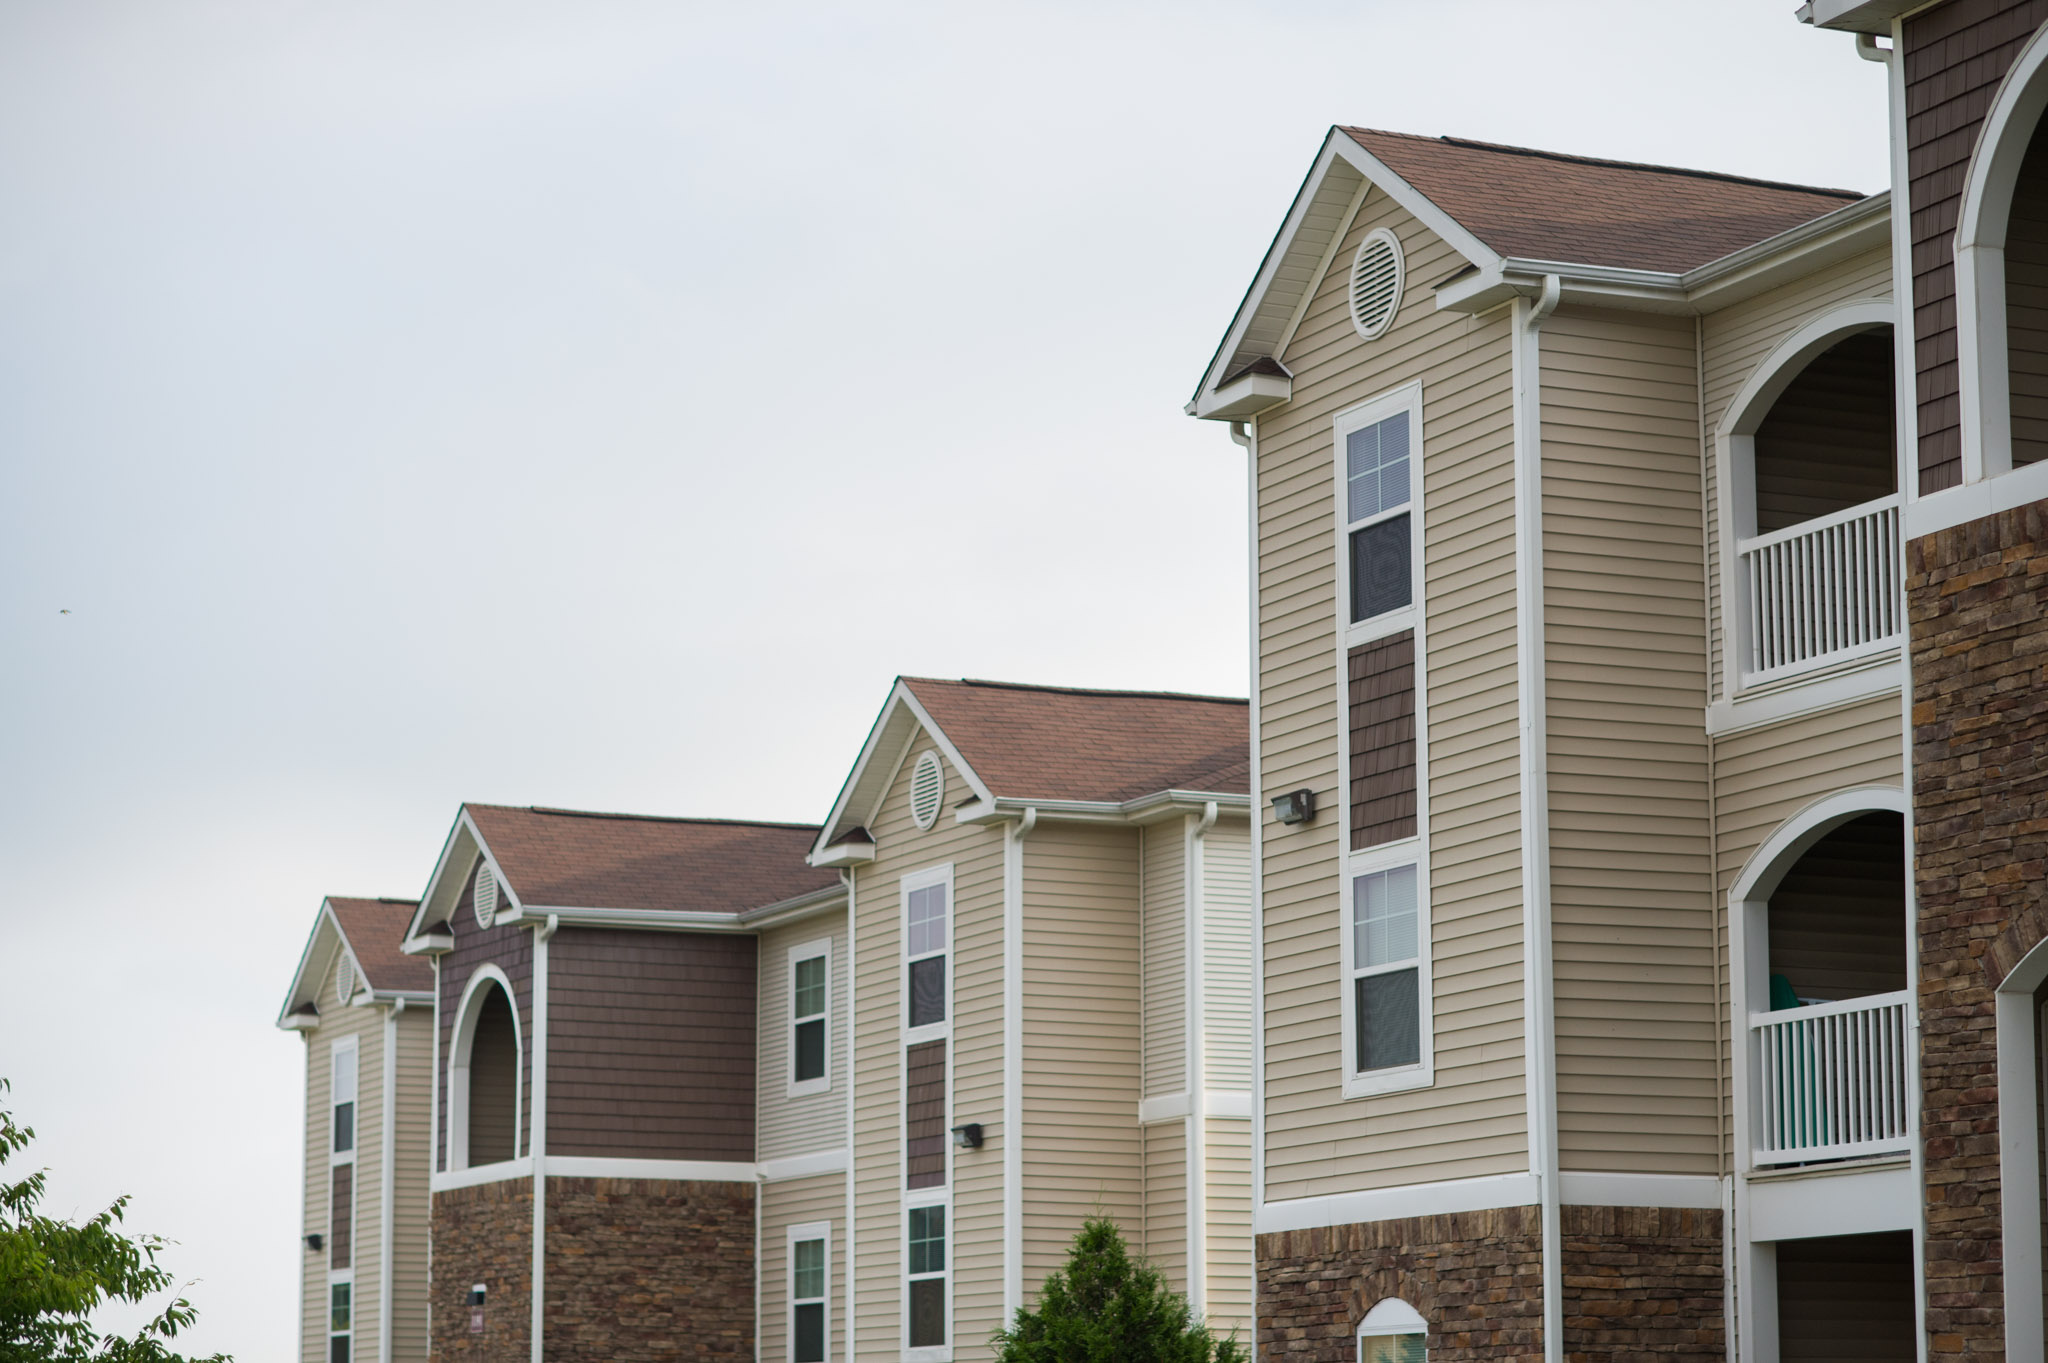 North 38 Exteriors for Web-1052.jpg